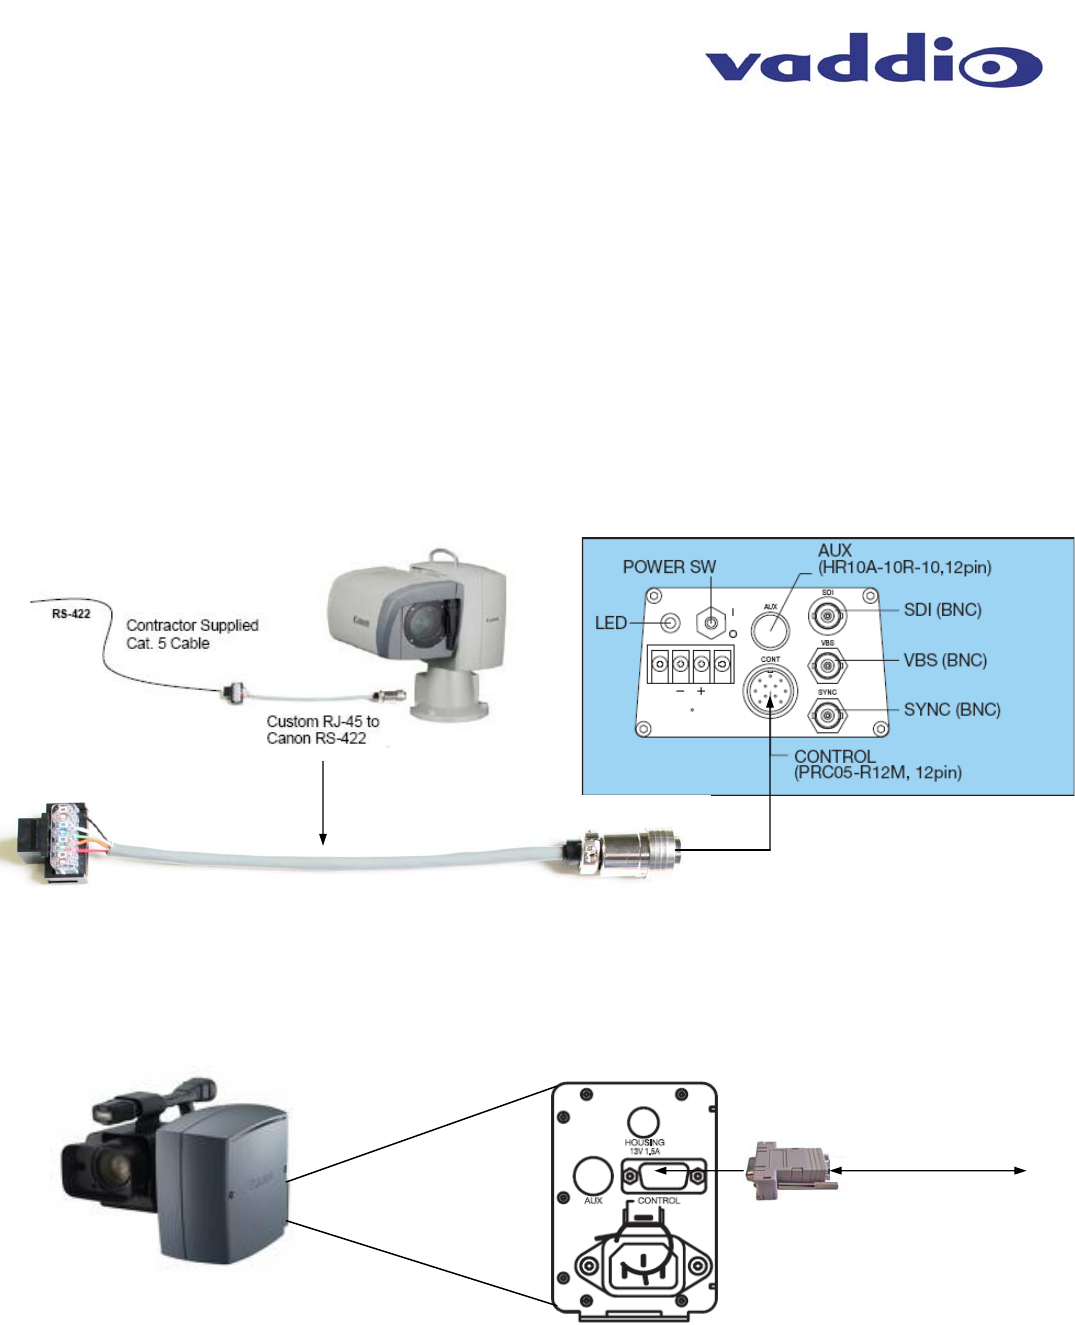 Cannon Bu 46h 341 909 Revb Canon 46 51 Manual User To The 4fe8b03d Cat 5 Wiring Diagram For Camera Series Ptz Systems